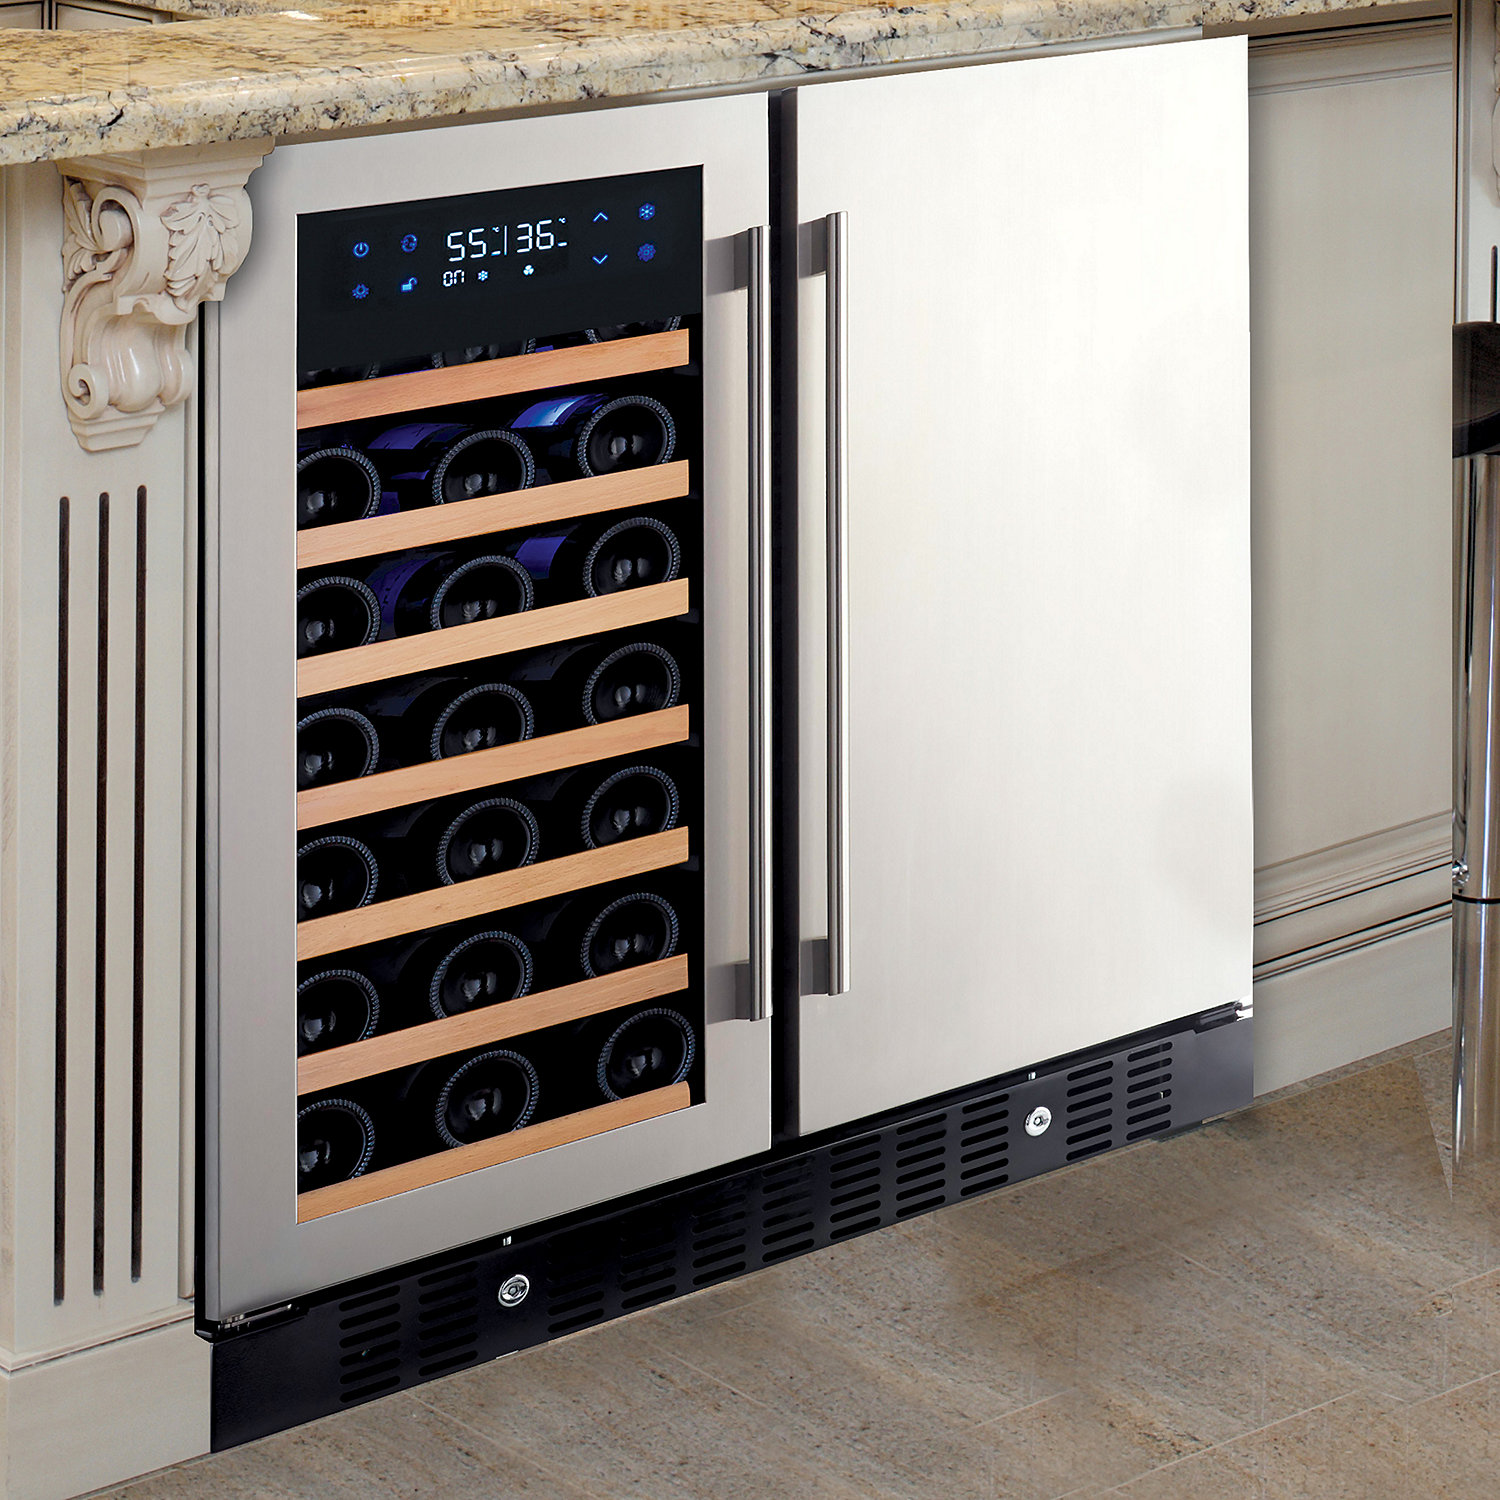 N FINITY PRO HDX Wine and Beverage Center Wine Enthusiast